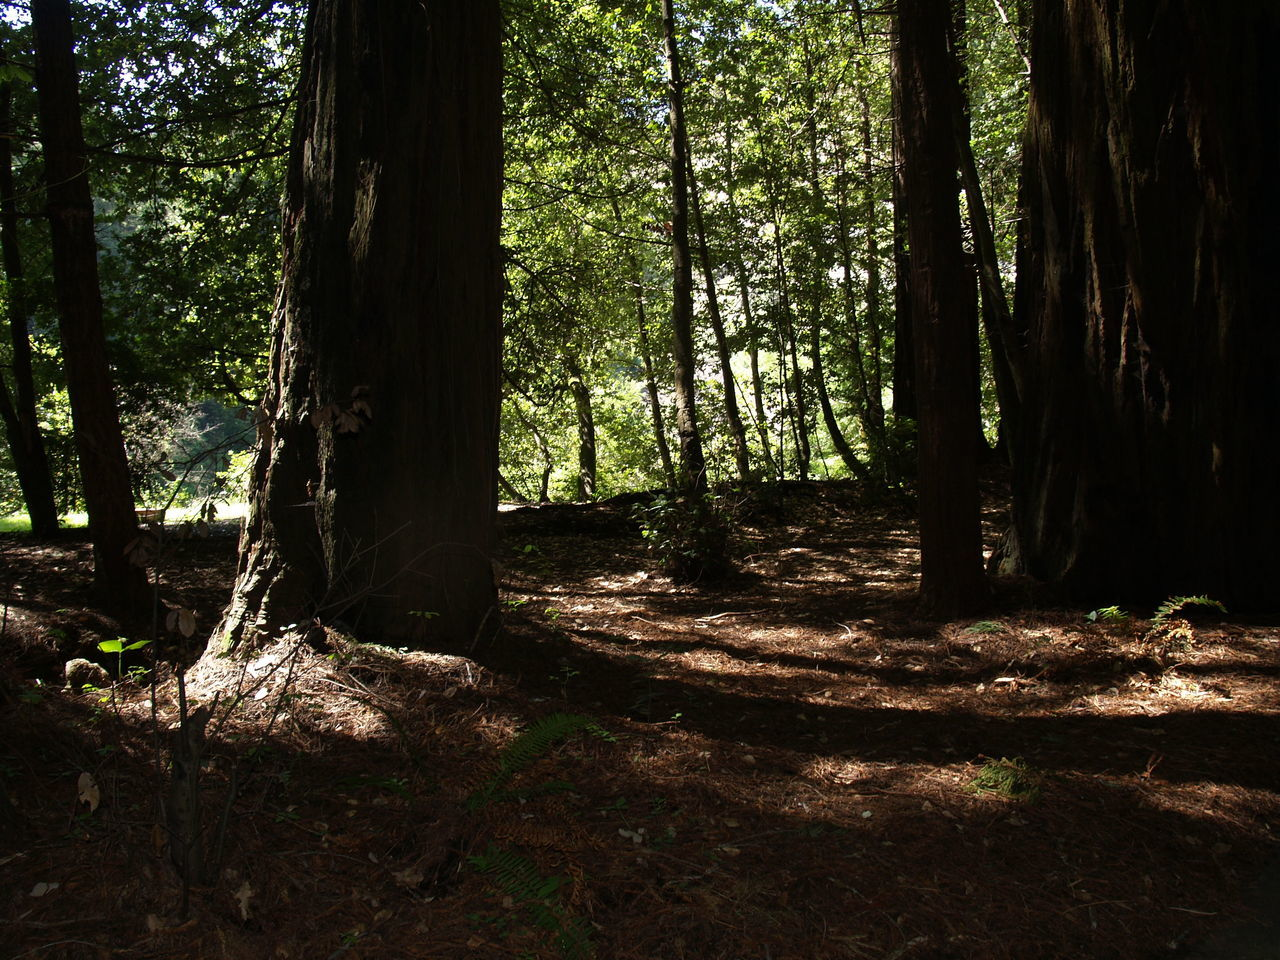 forest, tree, nature, tree trunk, tranquility, woodland, tranquil scene, day, no people, growth, outdoors, beauty in nature